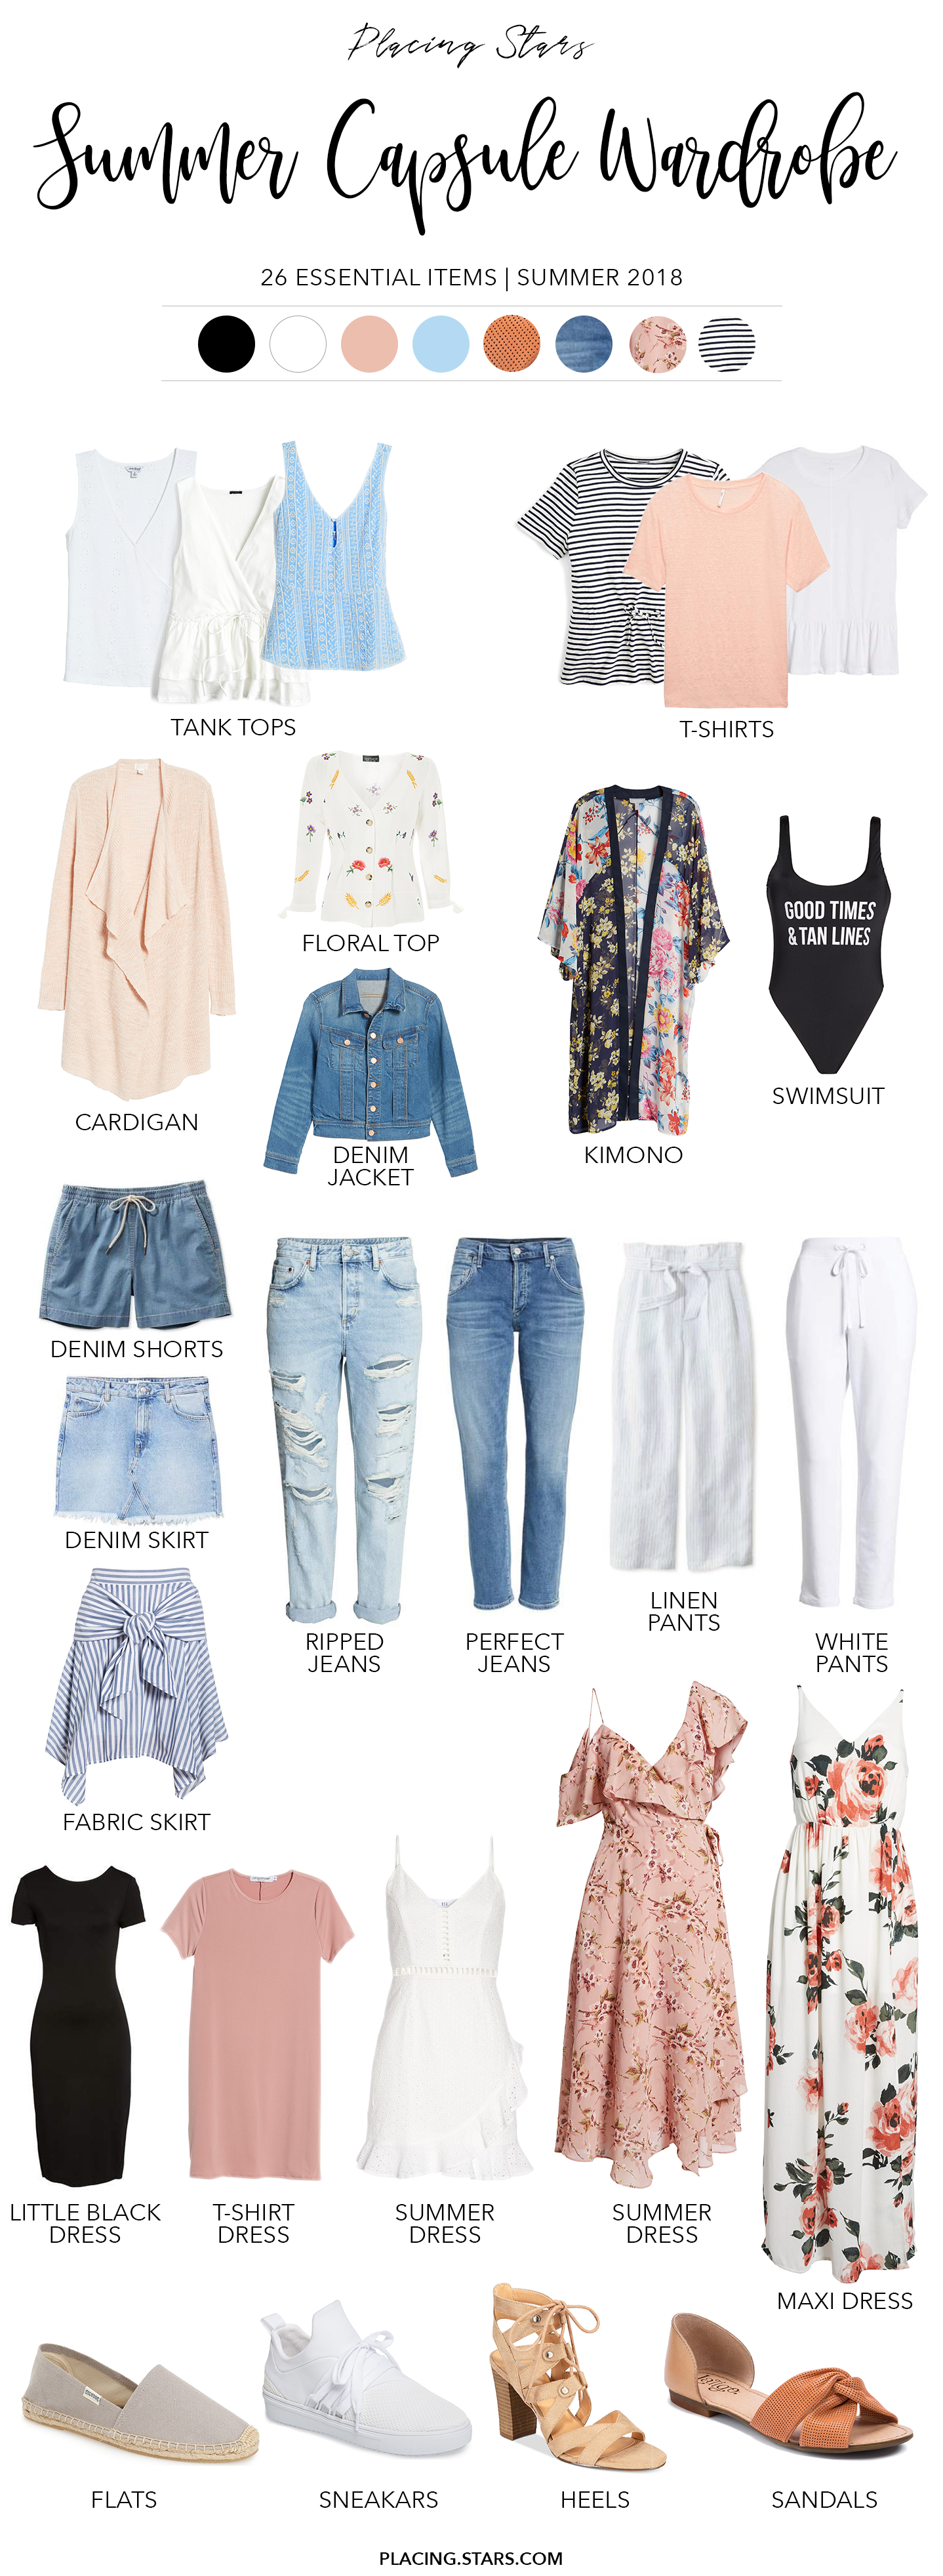 Summer Capsule Wardrobe 2018 #summerlooks2019